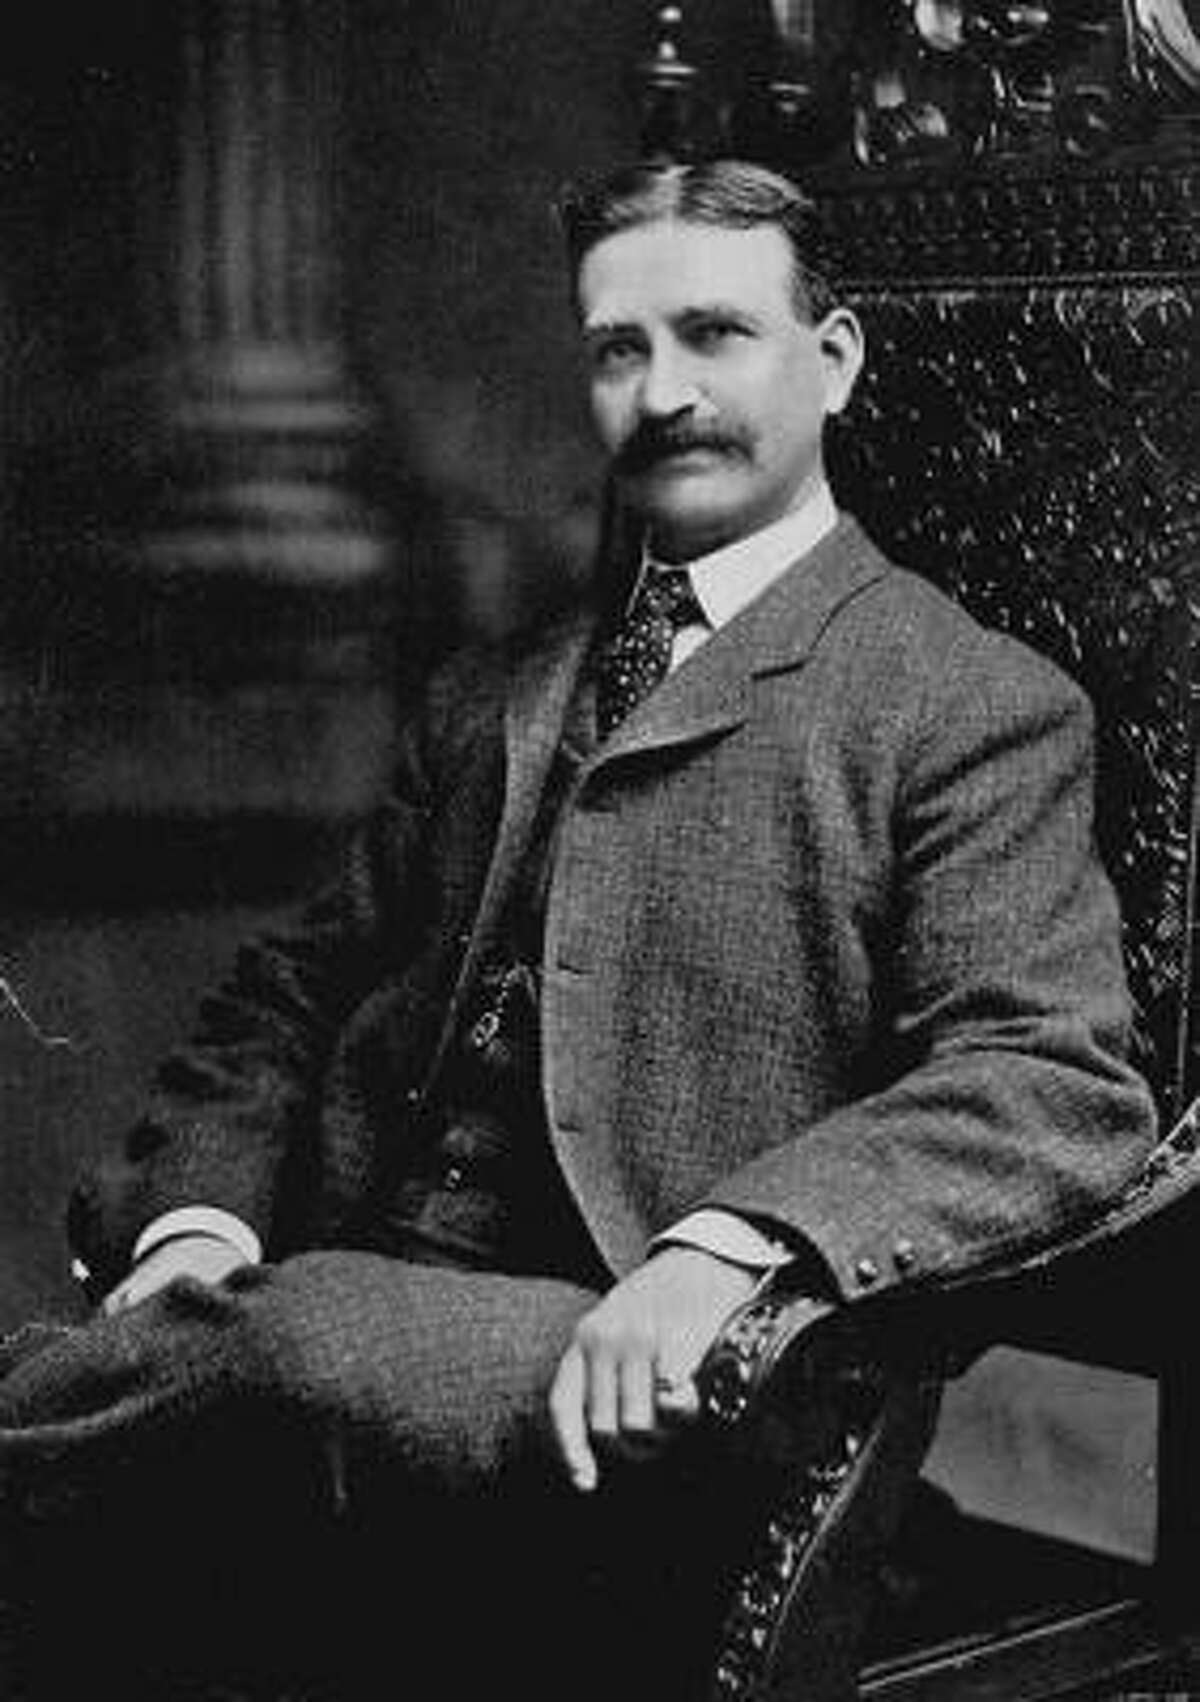 Frank Baum's novel, originally titled The Wonderful Wizard of Oz, was published in 1900.